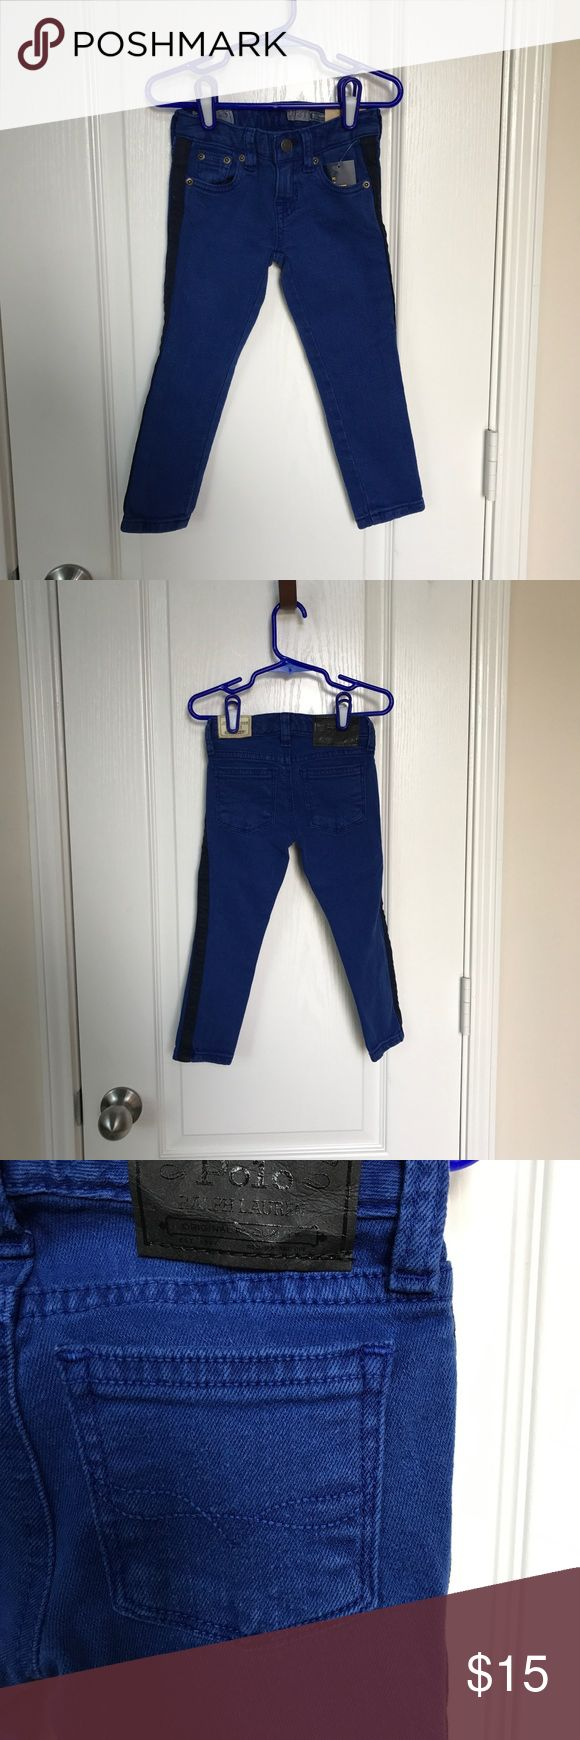 Polo Maryanne Toddler Jeans Girls NWT. Adjustable waist straps. These jeans feature a black stripe on each jean leg. Size: 2t. Color: Blue. Feel free to ask if any questions. Polo by Ralph Lauren Bottoms Jeans